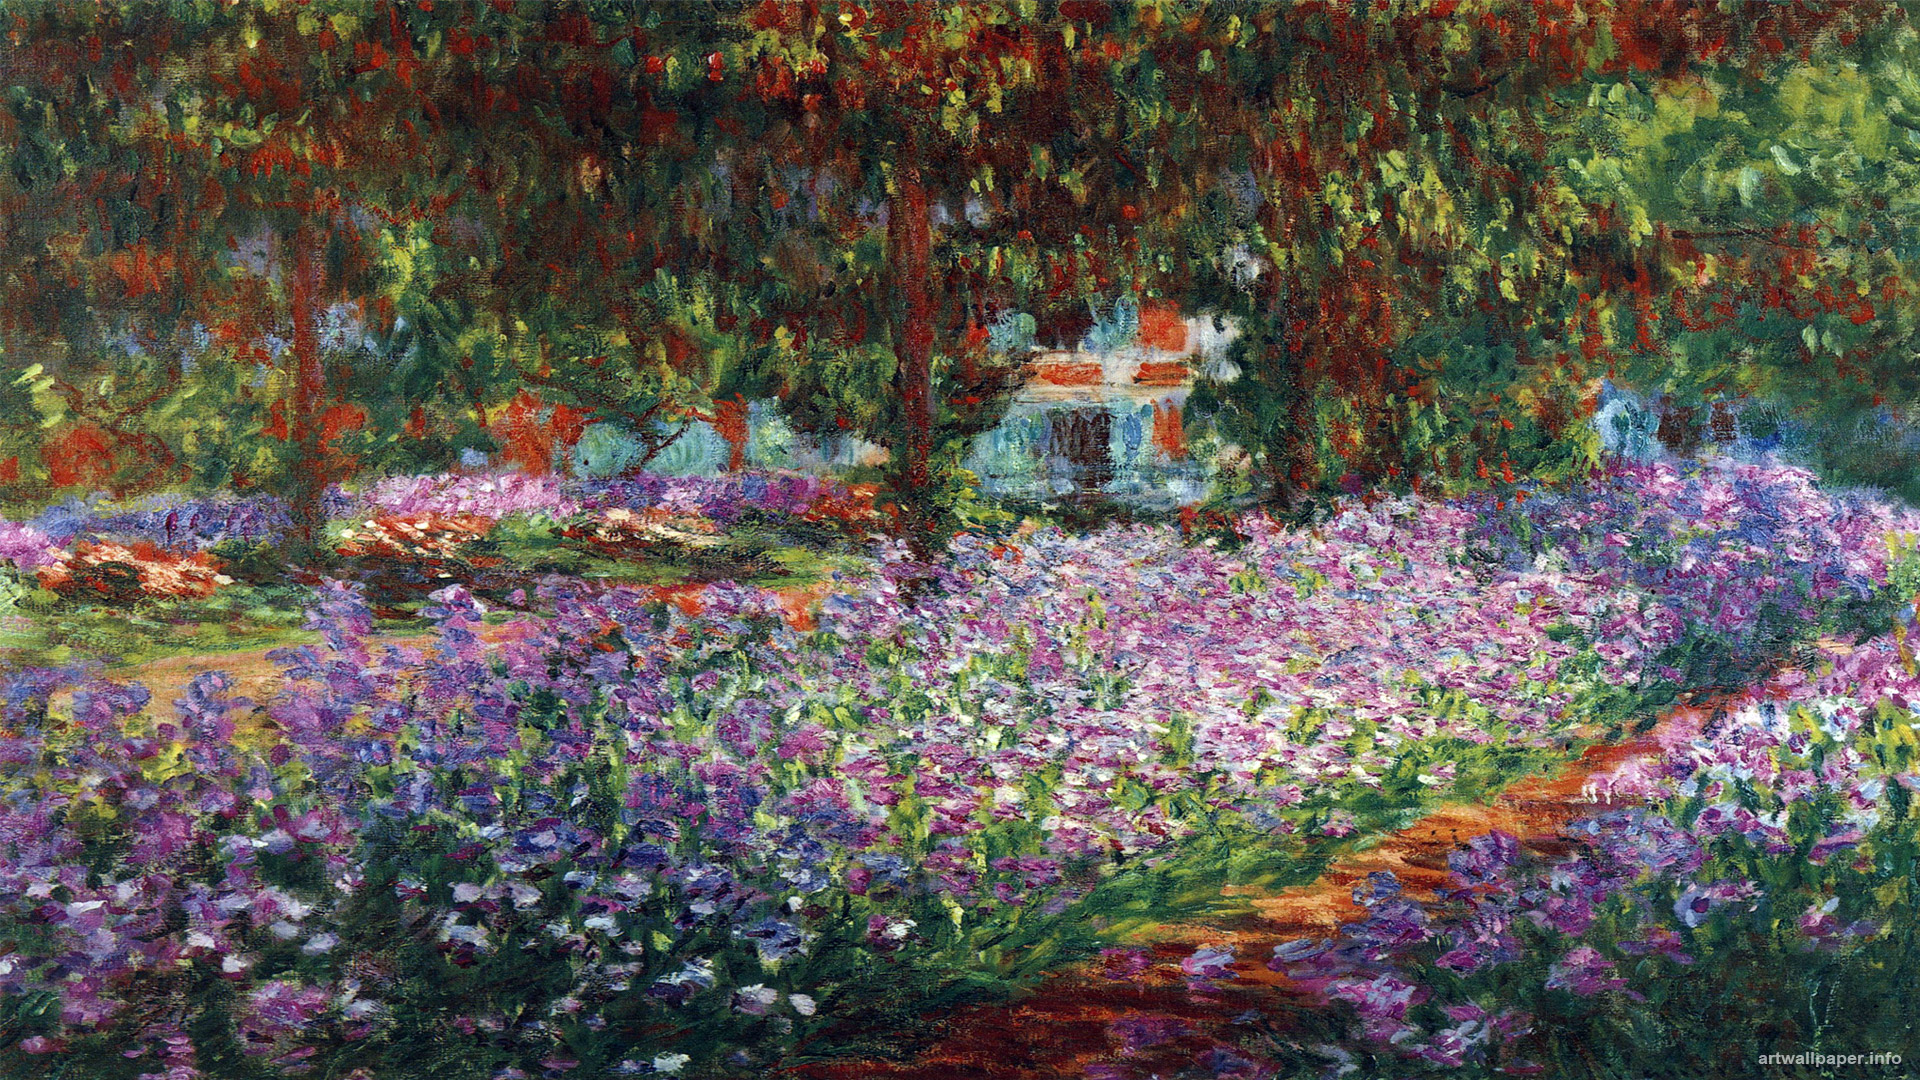 High Resolution Images Of Impressionist Paintings